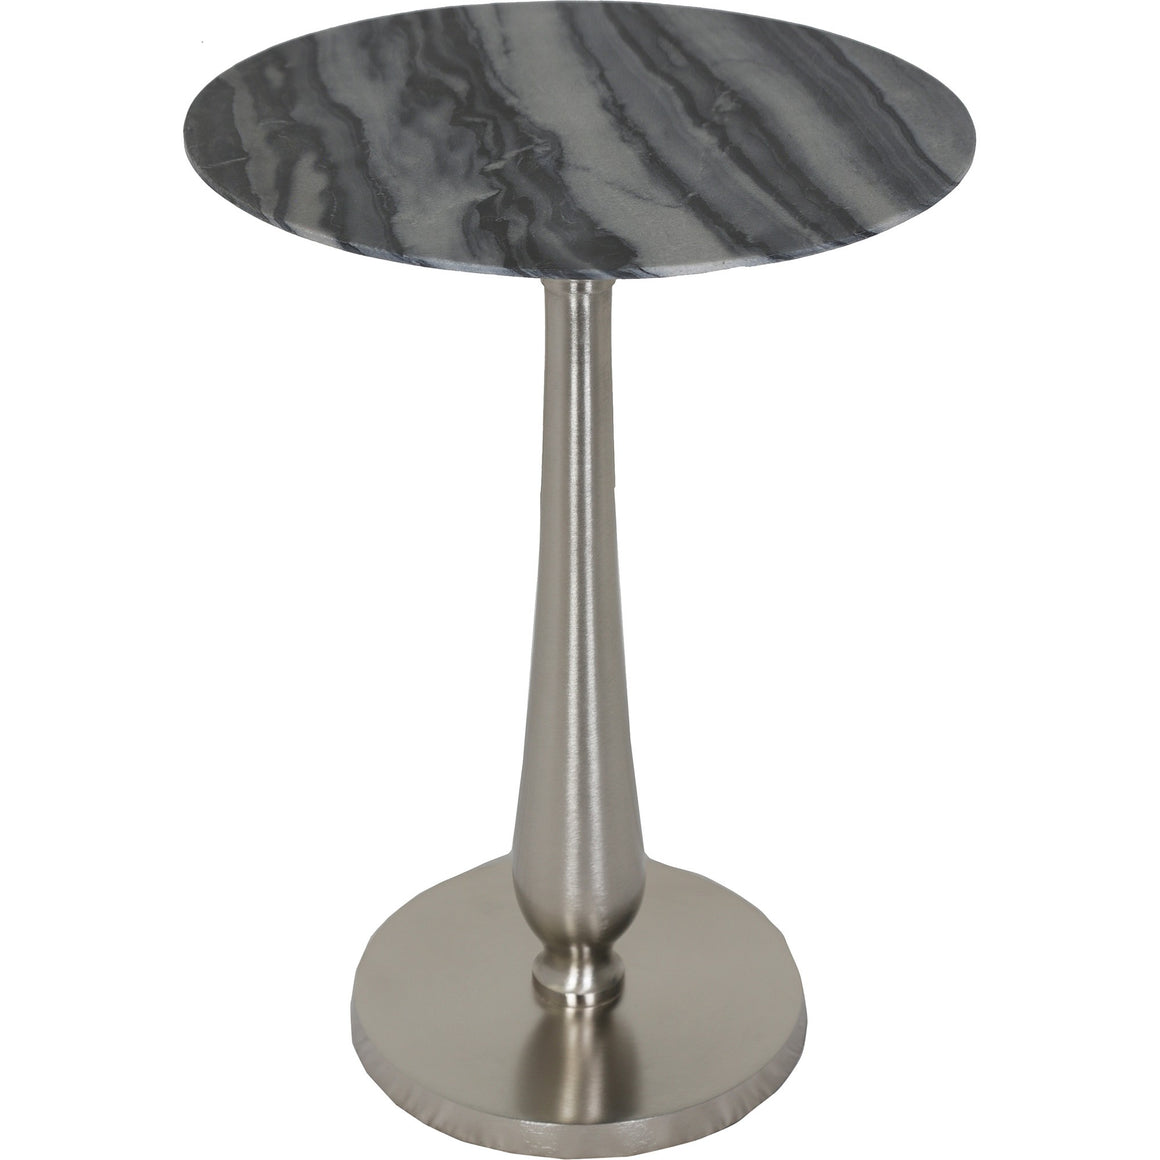 Valda Side Table - taylor ray decor